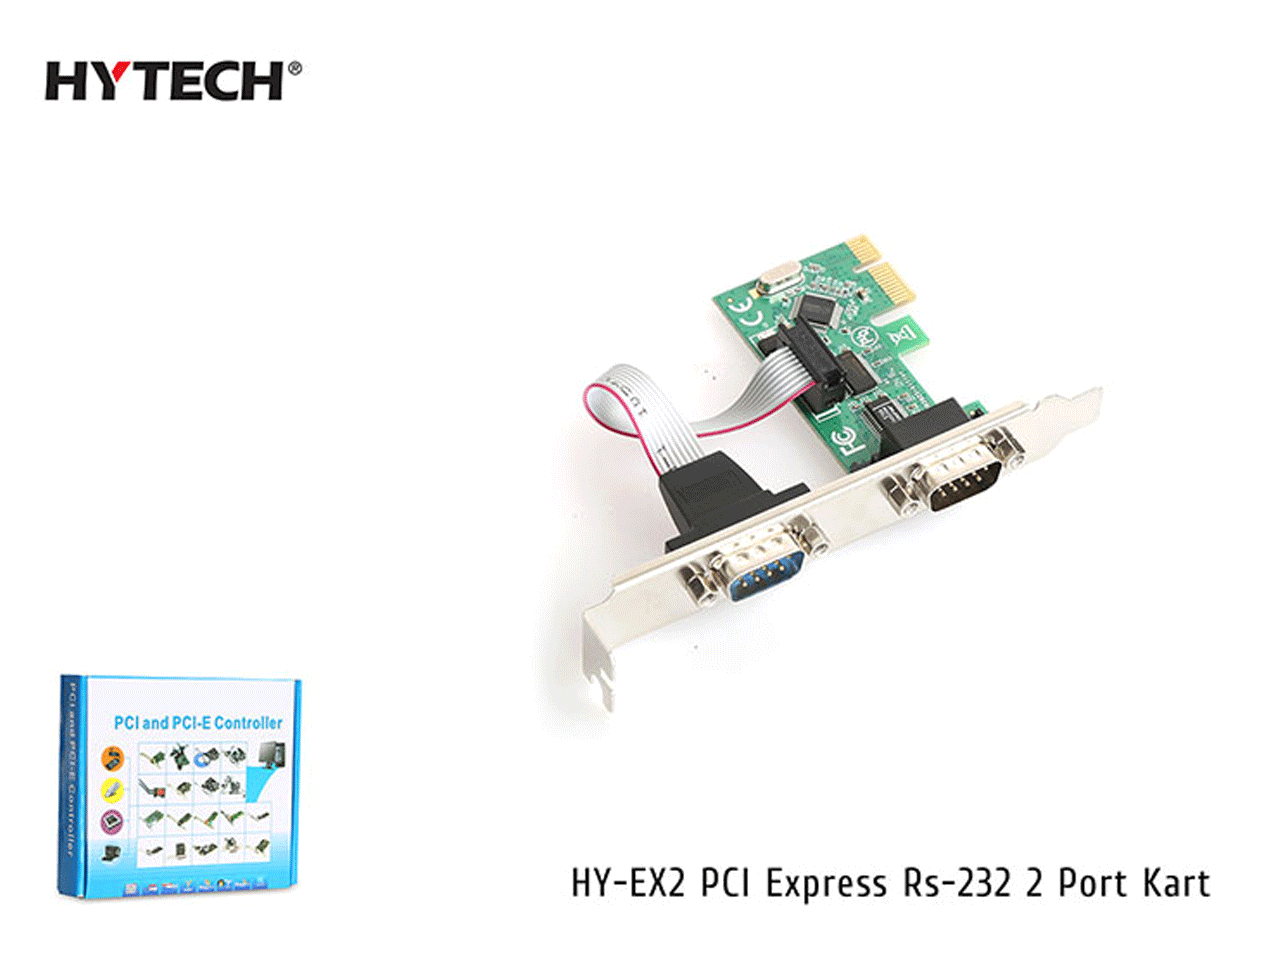 Hytech HY-EX2 PCI Express Rs-232 2 Port Kart